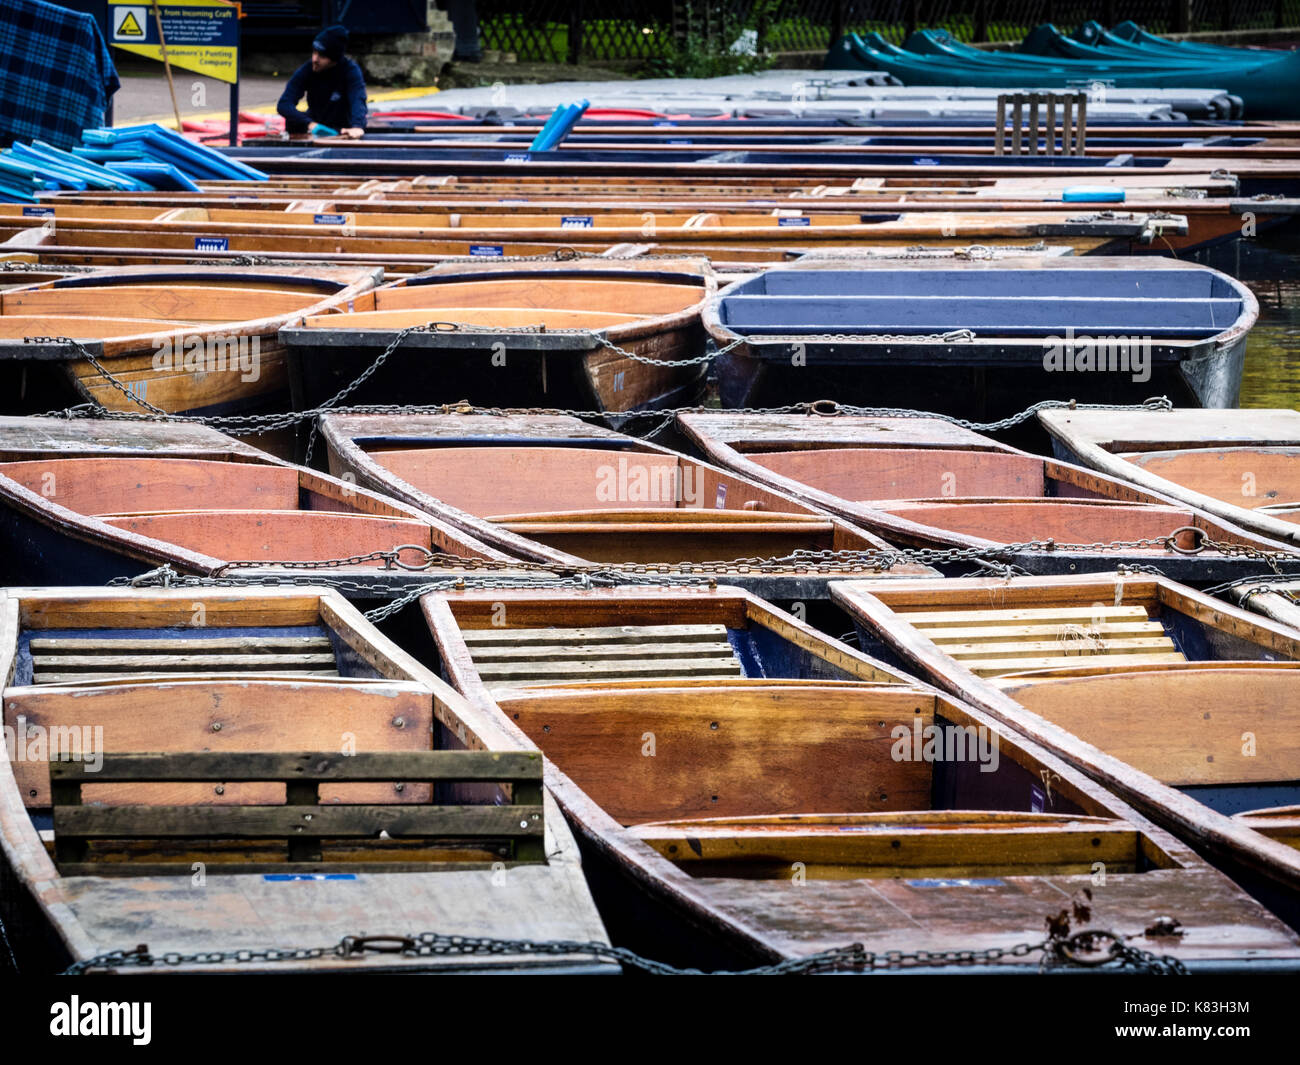 Cambridge Tourism - punts on the River Cam tied up while waiting for tourists to hire them - Stock Image